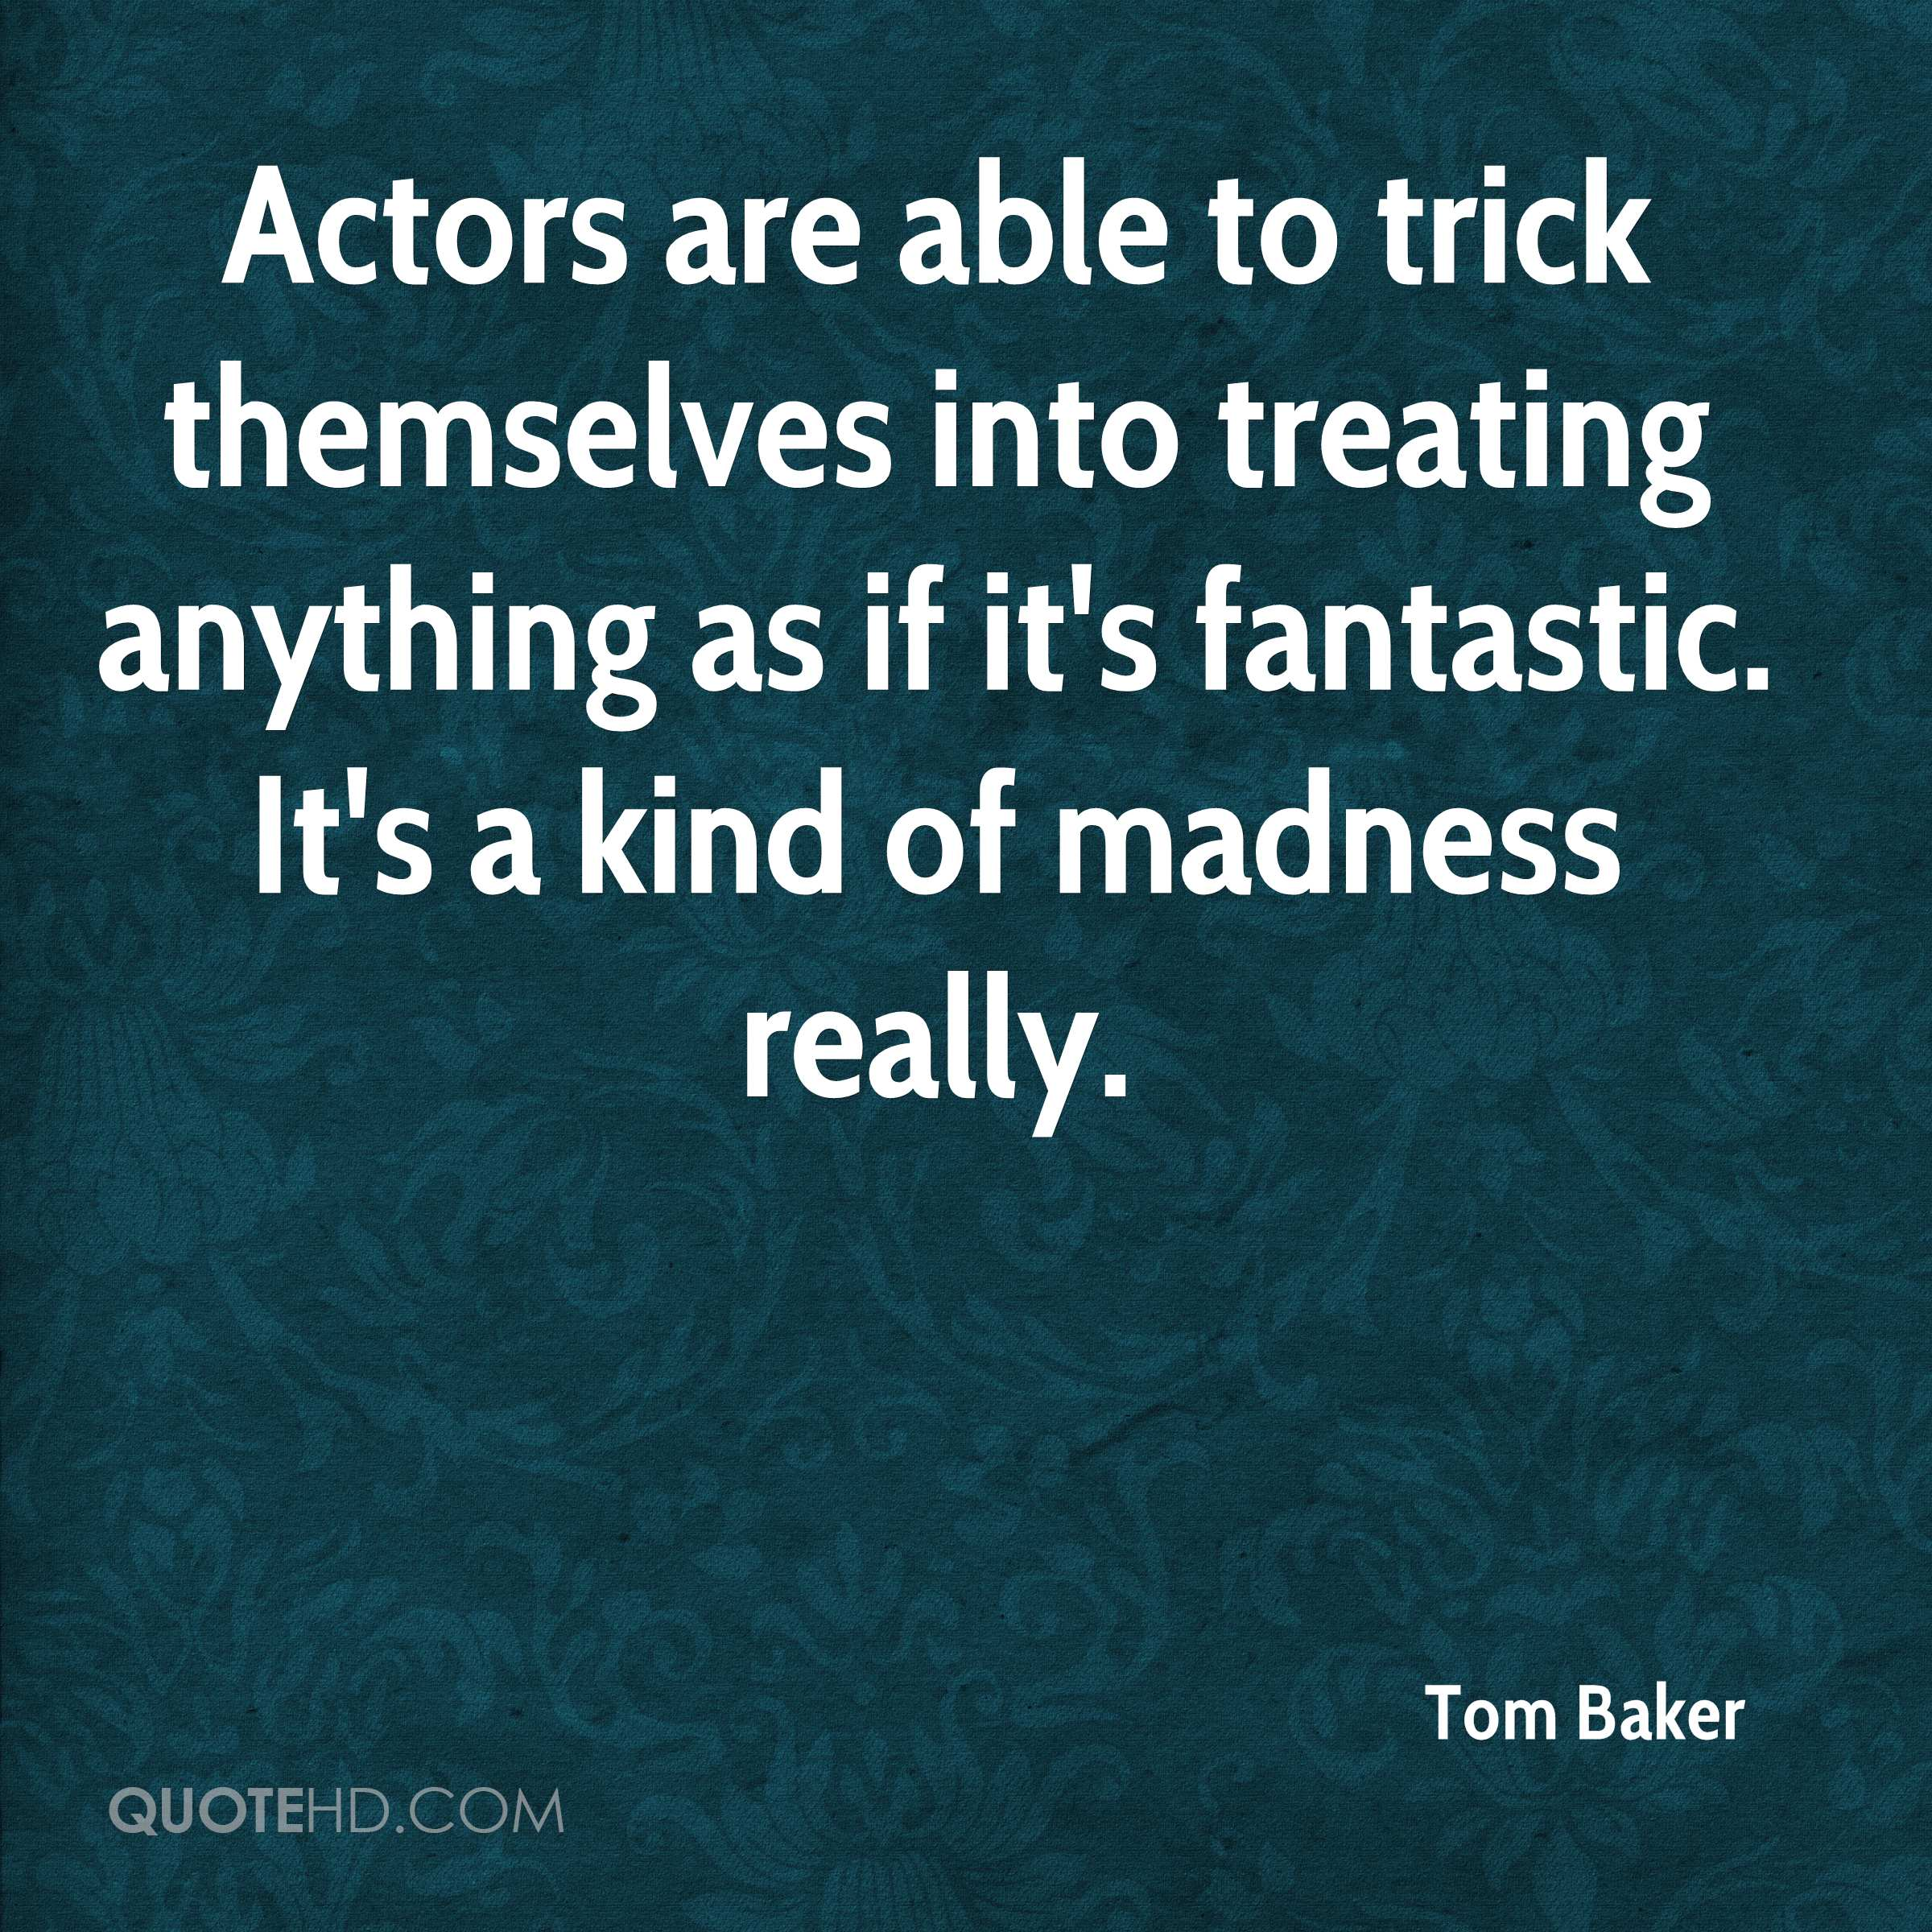 Actors are able to trick themselves into treating anything as if it's fantastic. It's a kind of madness really.